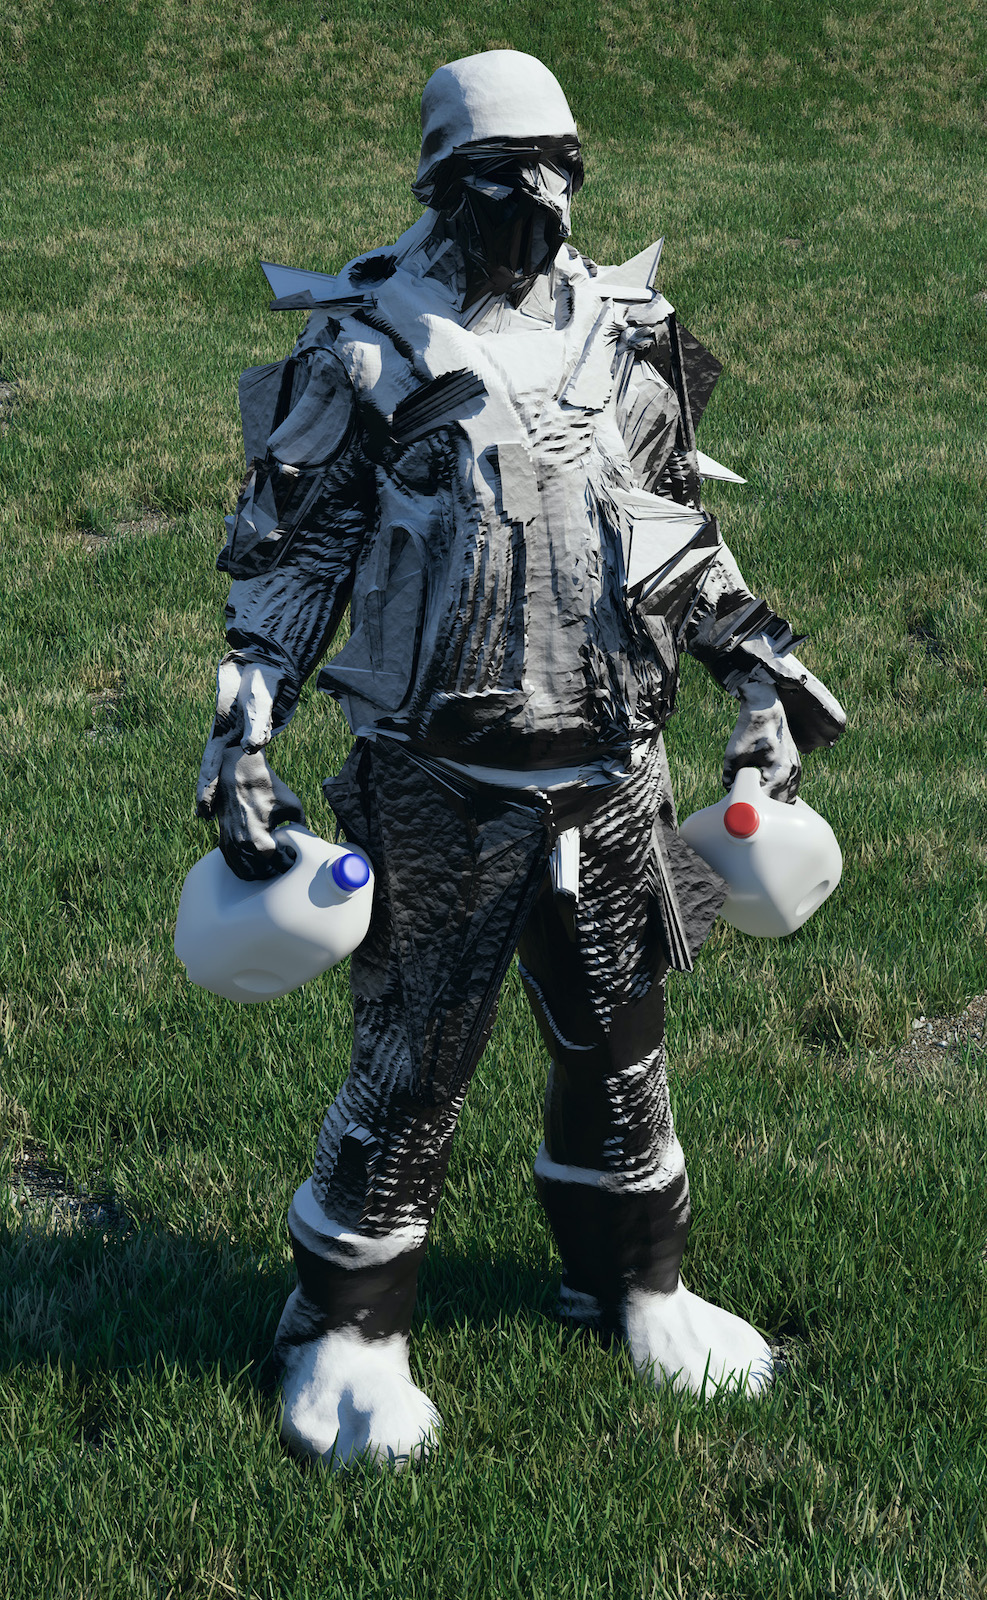 Person standing in a grass field wearing a protective suit holding two jugs of milk